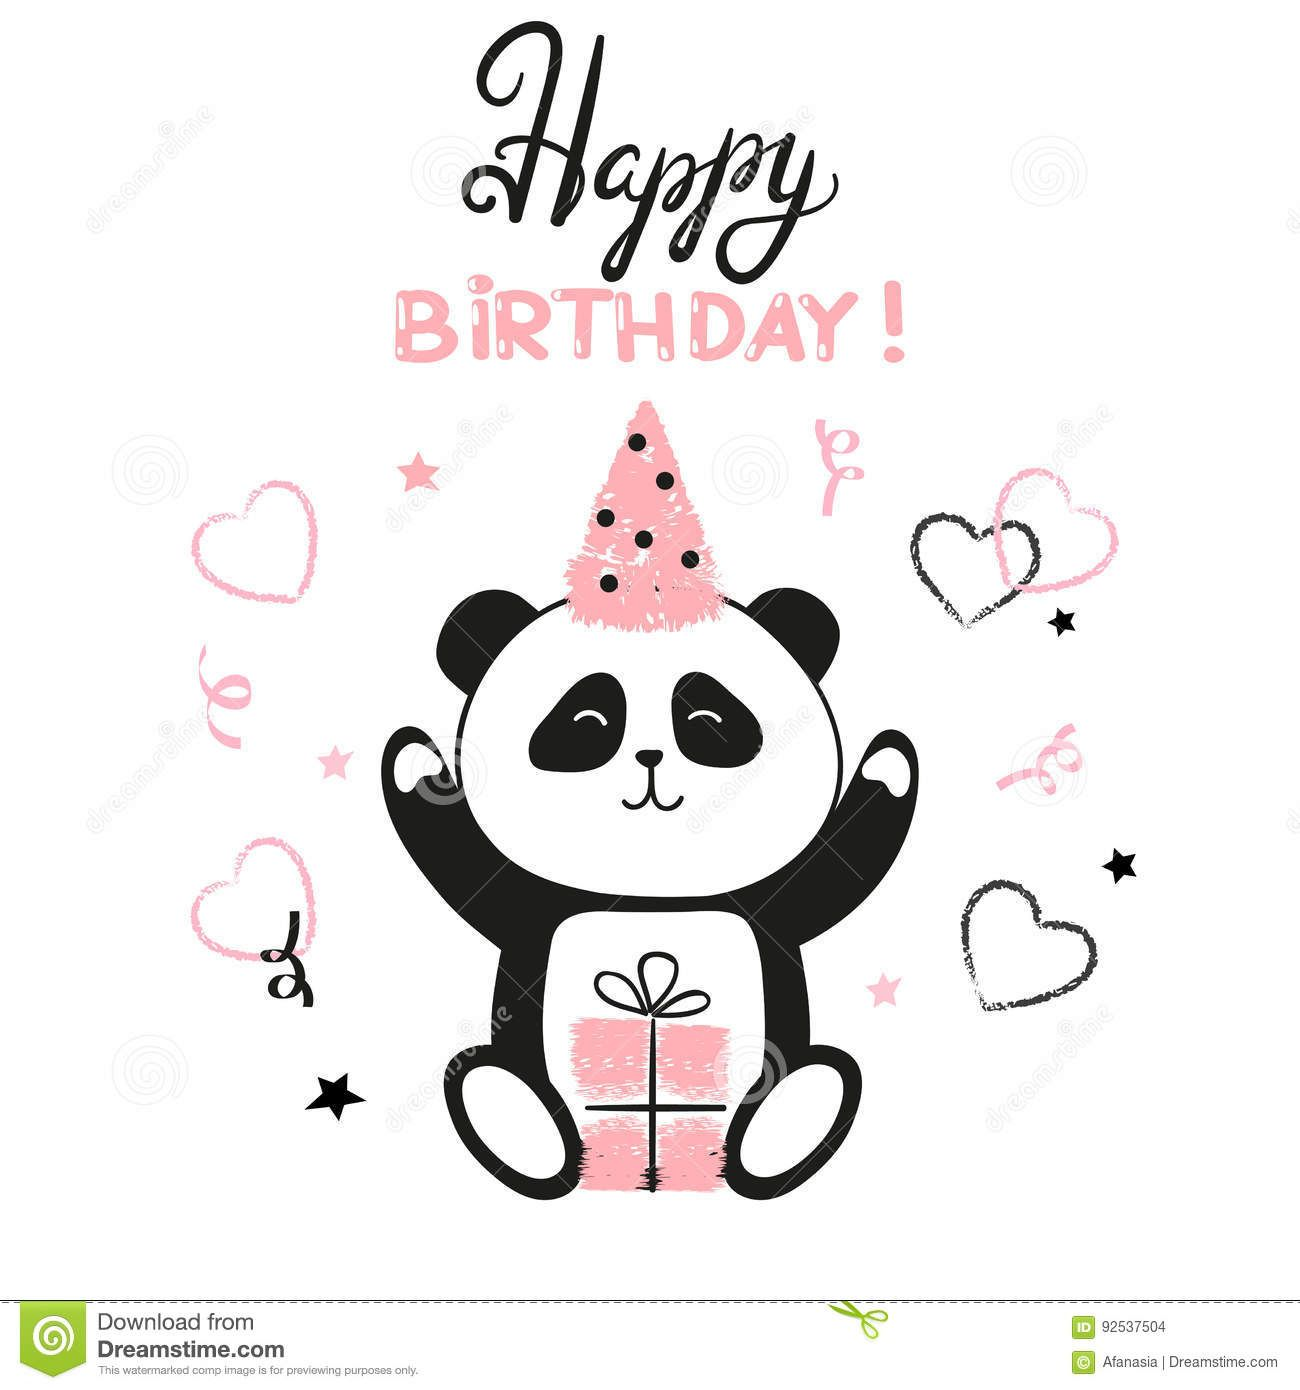 Illustration About Happy Birthday Card Design With Cute Panda Bear Vector Illustration Illustration Of Cute Panda Cartoon Panda Birthday Happy Birthday Cards